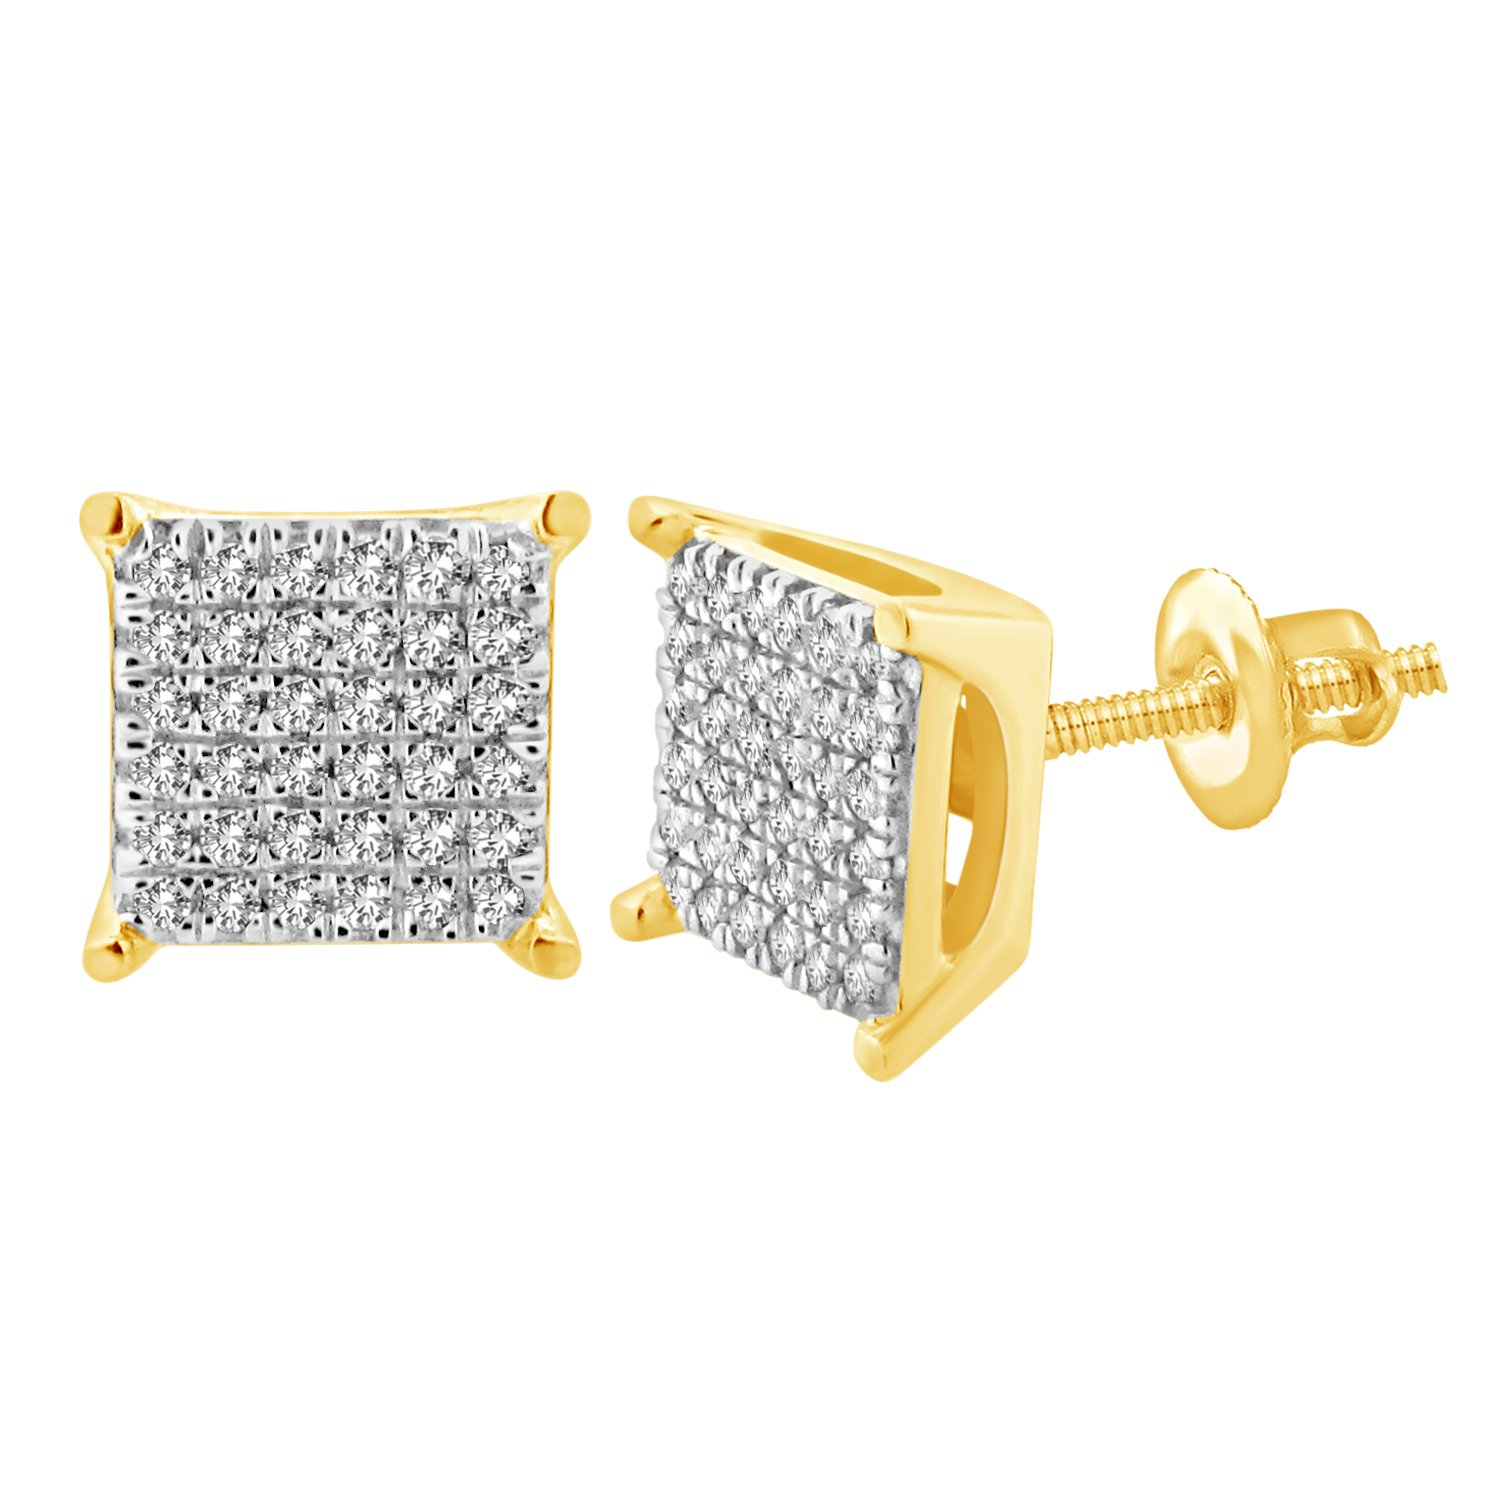 Men's and Women's 10k Yellow Gold 1/4 cttw Single-Cut Natural Diamonds Stud Earrings